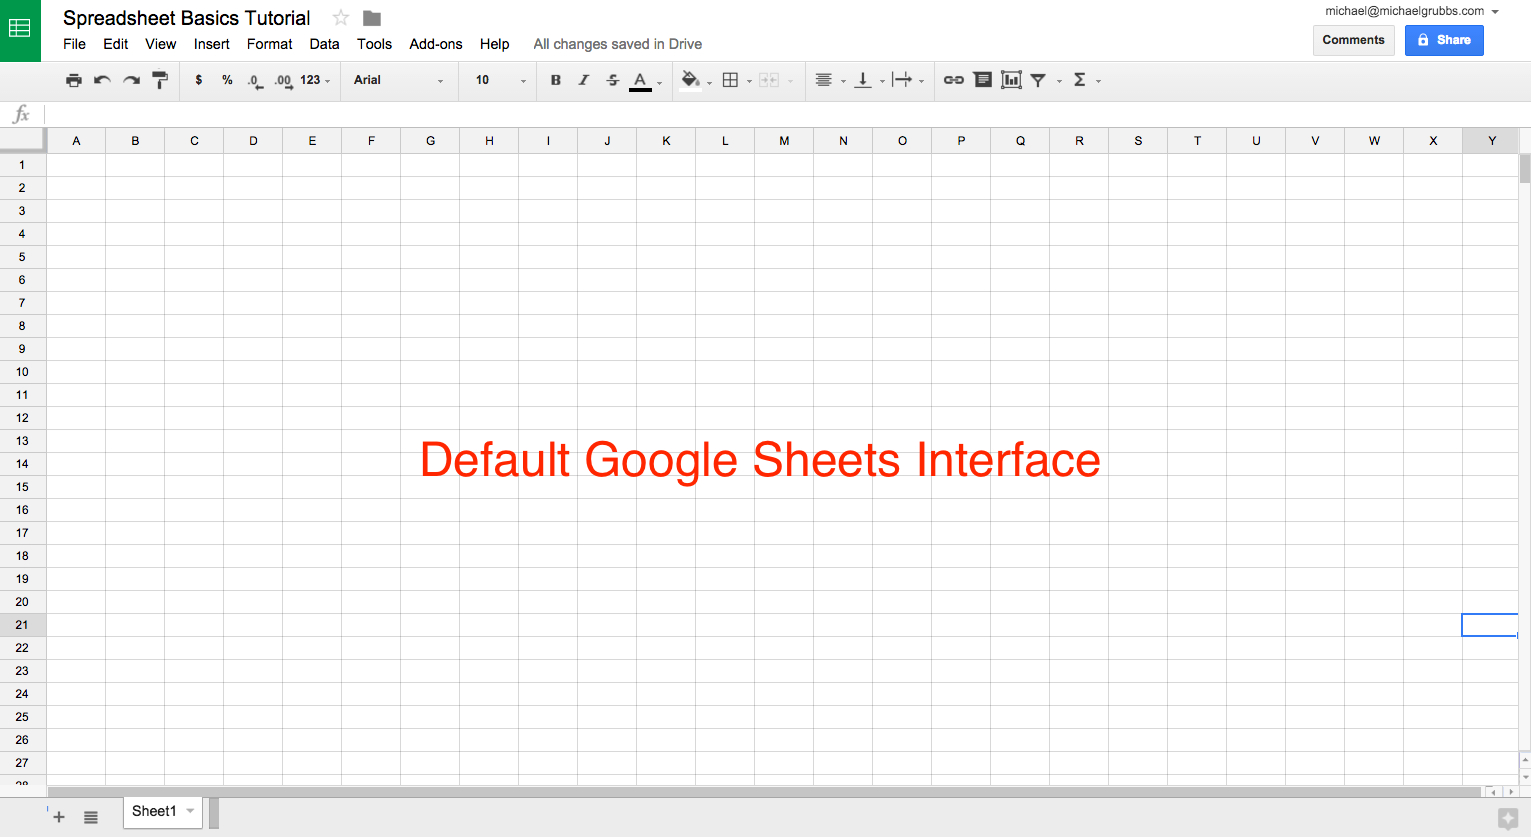 Free Spreadsheet Editor With Google Sheets 101: The Beginner's Guide To Online Spreadsheets  The